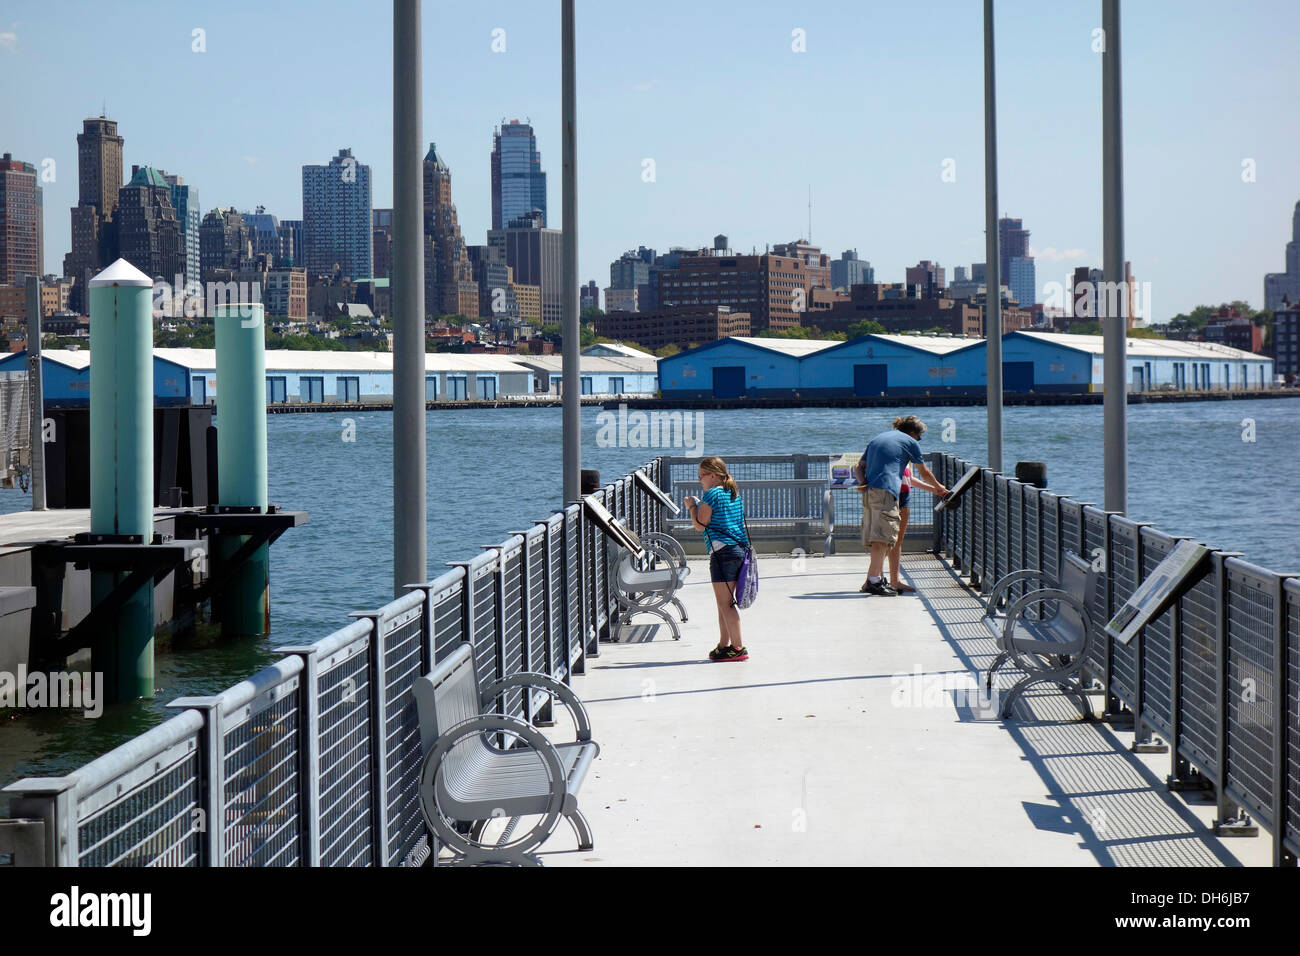 governors island ferry pier in new york city stock photo: 62226395